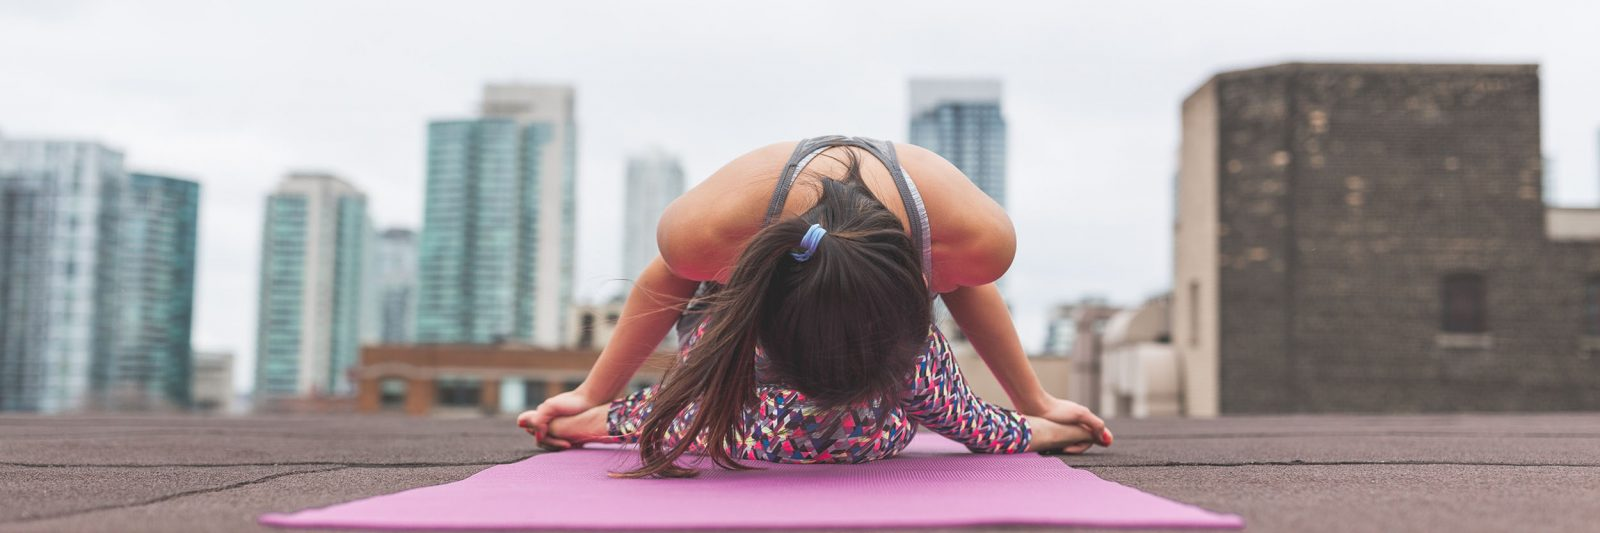 workplace_wellbeing_corporate_yoga_stretching_the_city